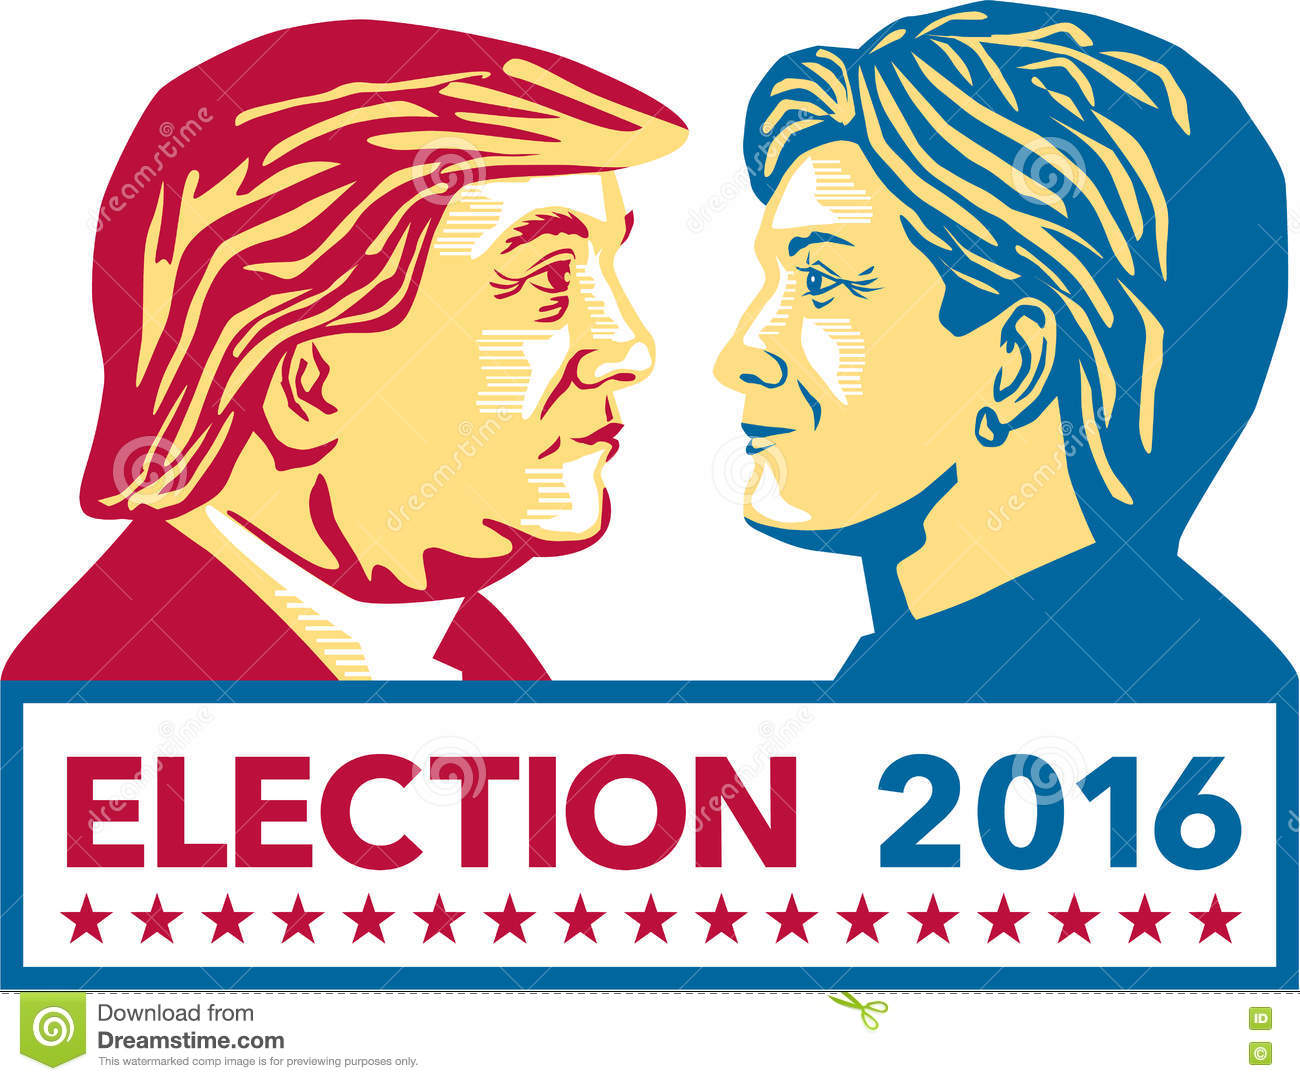 Presidential Election 2016 Clipart.